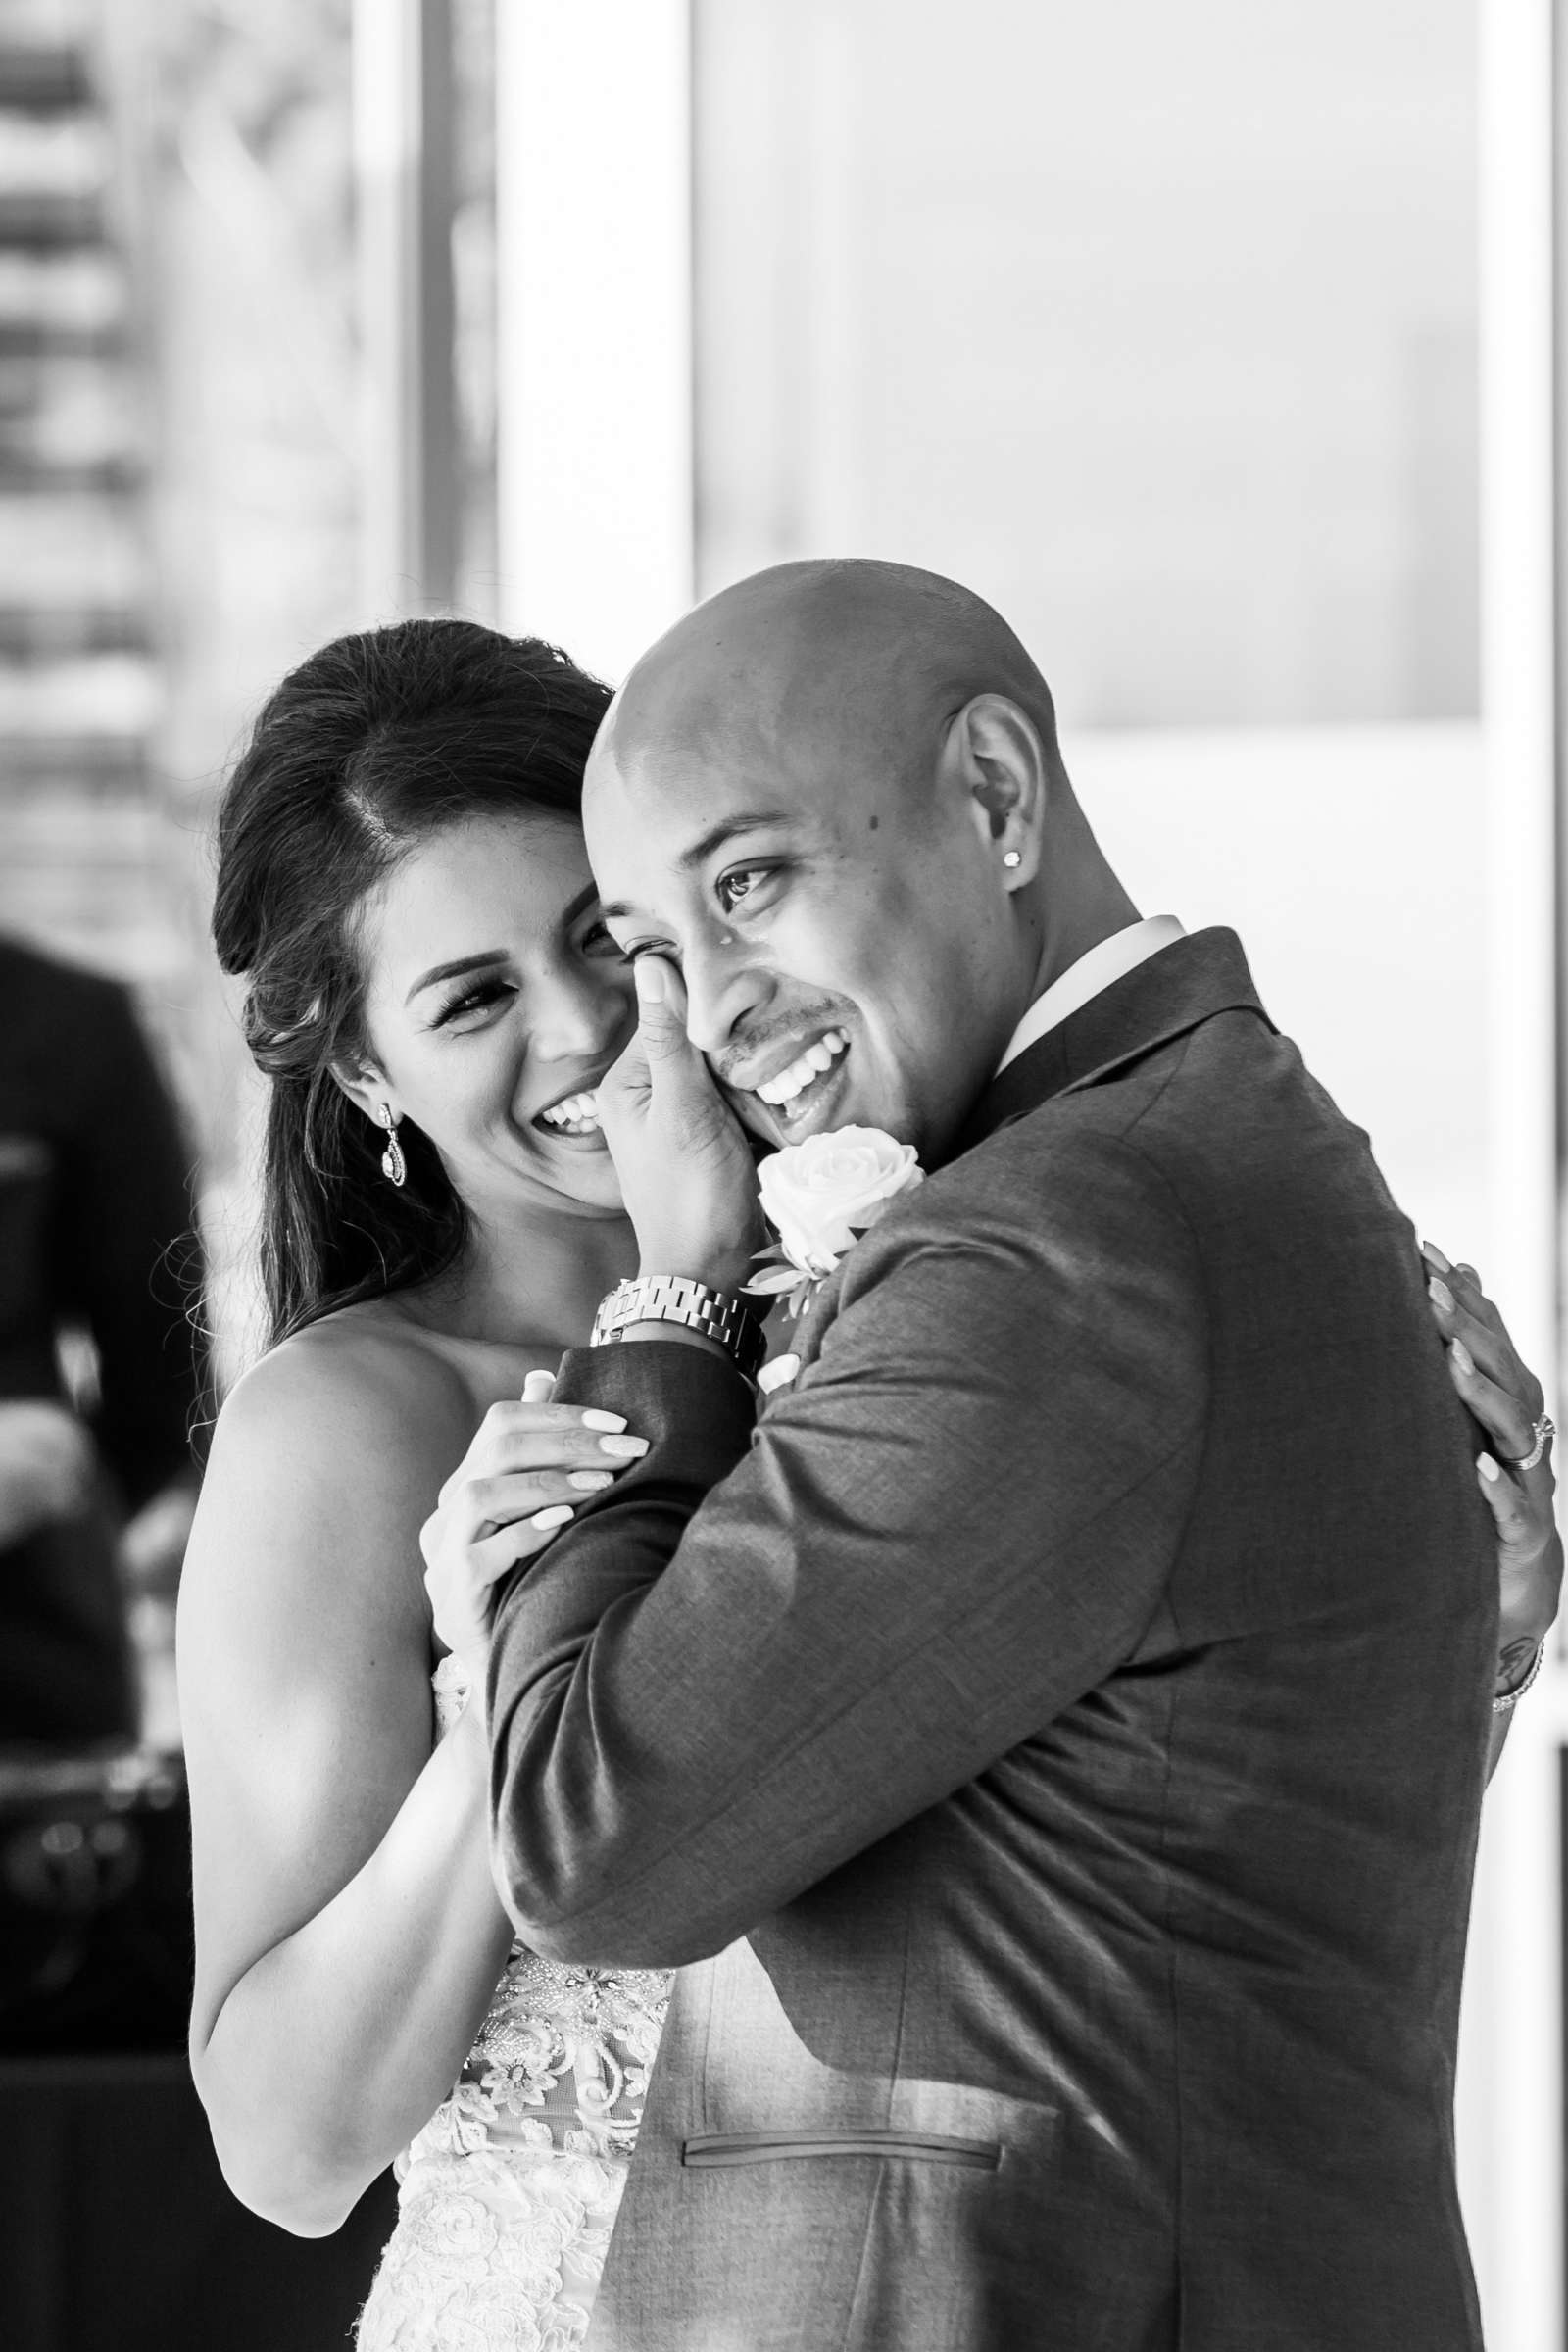 Scripps Seaside Forum Wedding coordinated by Lavish Weddings, Cindy and Justin Wedding Photo #381855 by True Photography